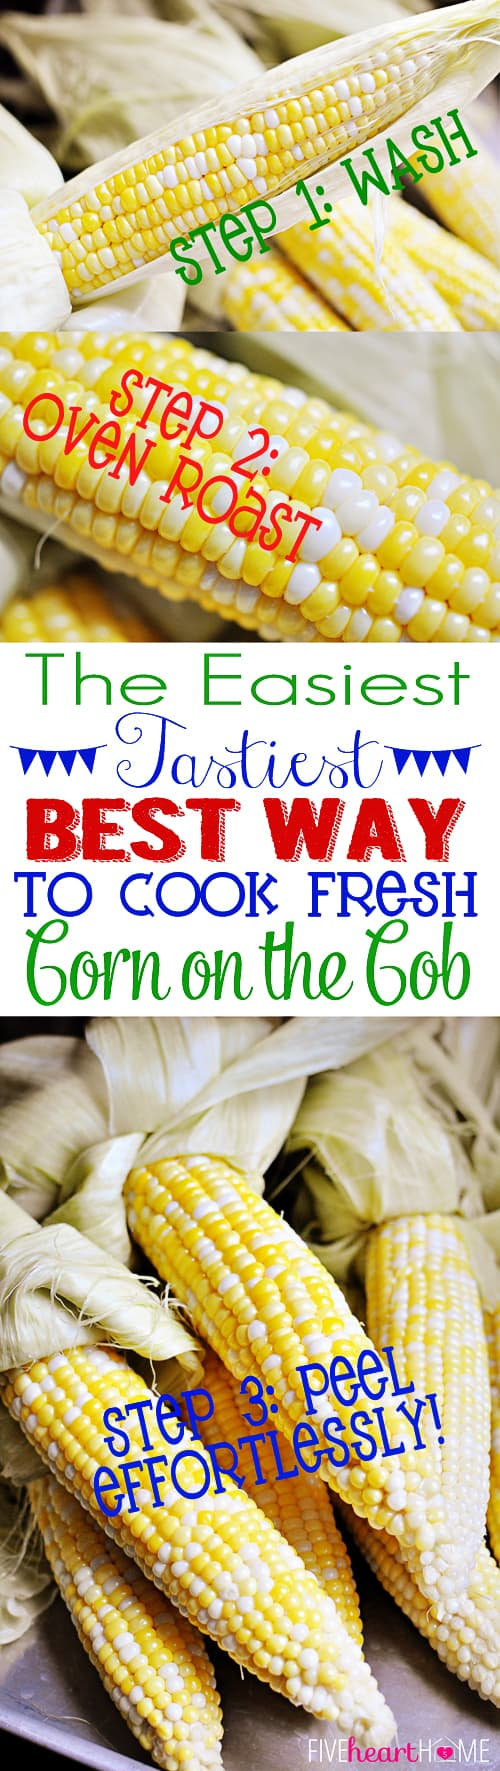 The Easiest, Tastiest, BEST Way to Cook Fresh Corn on the Cob: Oven Roasting! Simply wash & cook...once done, husks and silk peel away with no mess! | FiveHeartHome.com via @fivehearthome